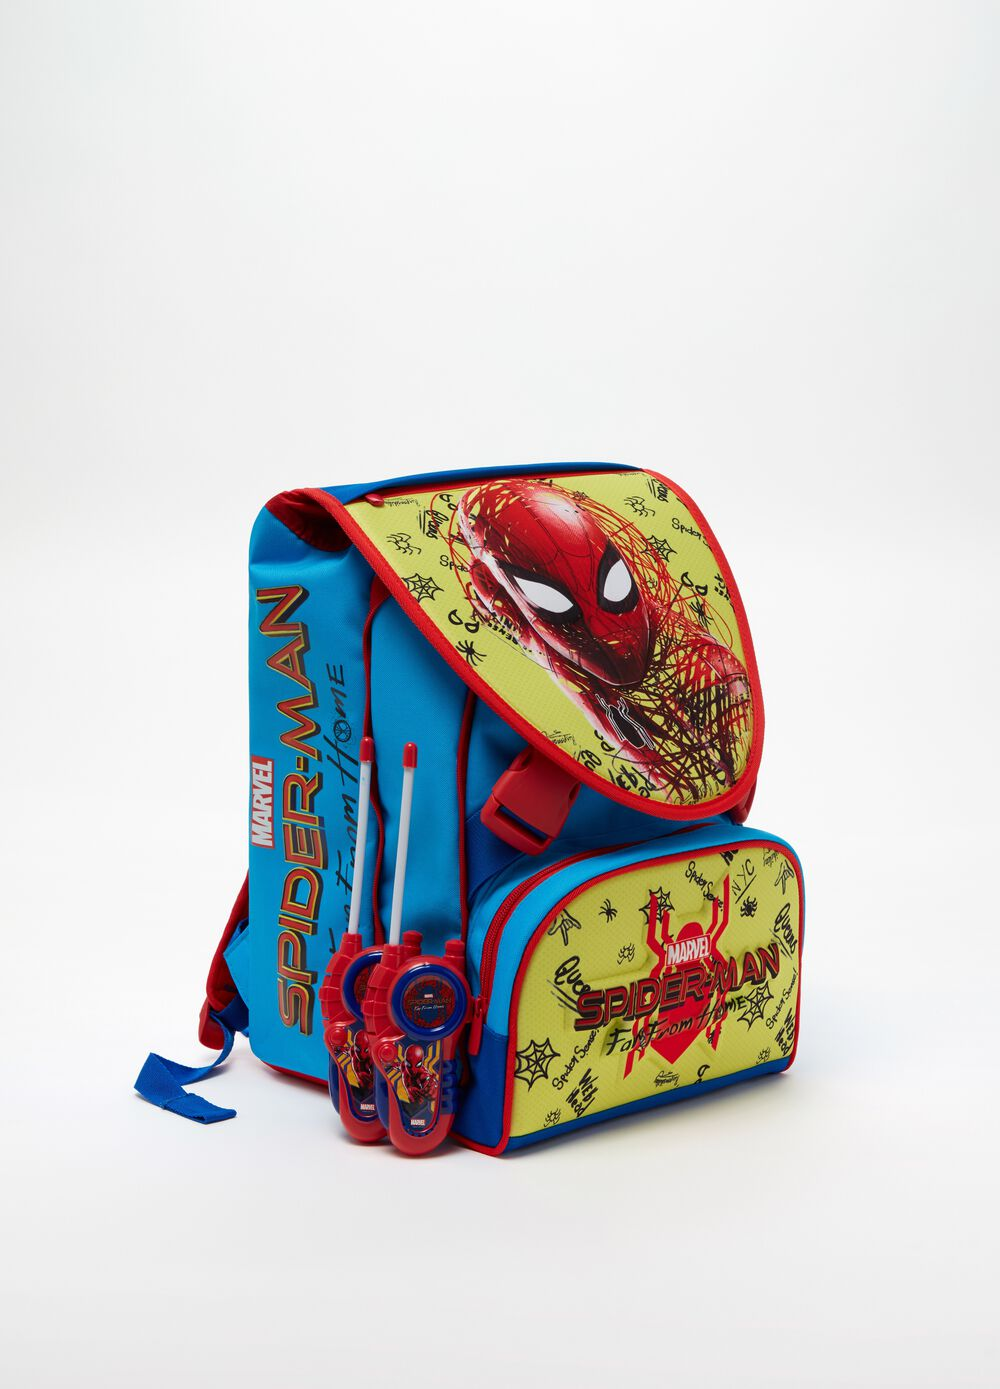 Spider-Man Far From Home backpack